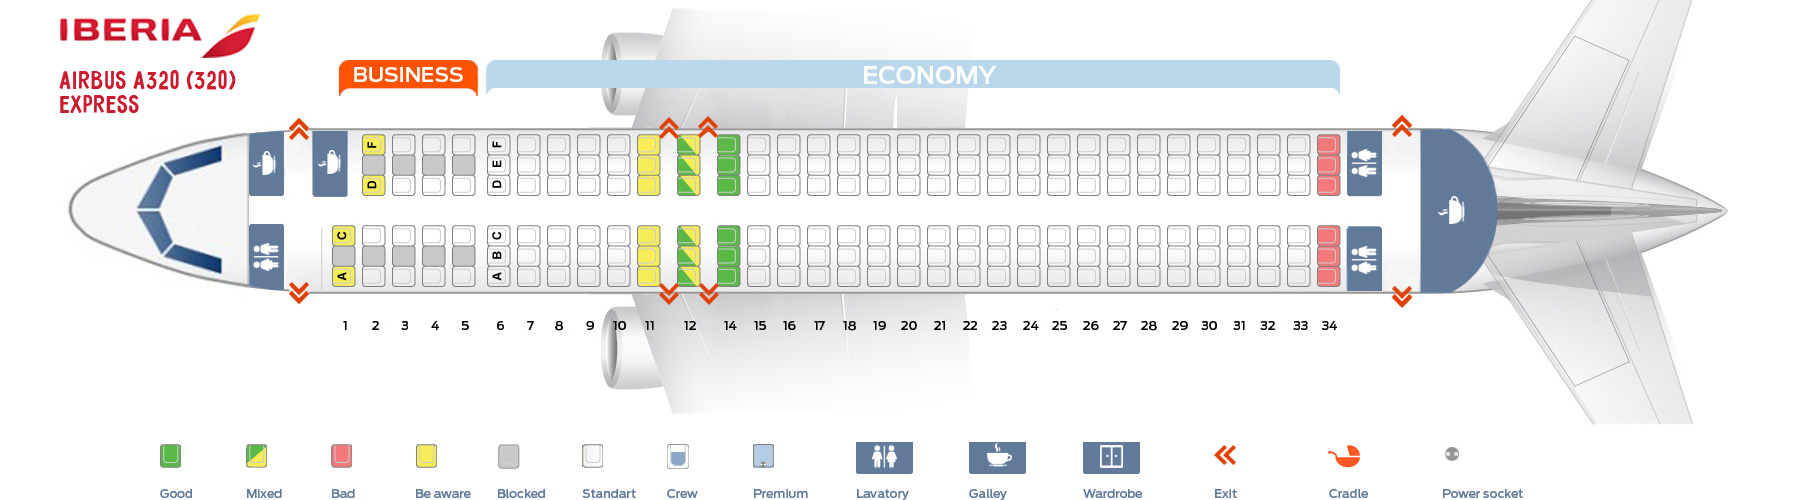 Seat Map Airbus A320 200 Iberia Best Seats In The Plane